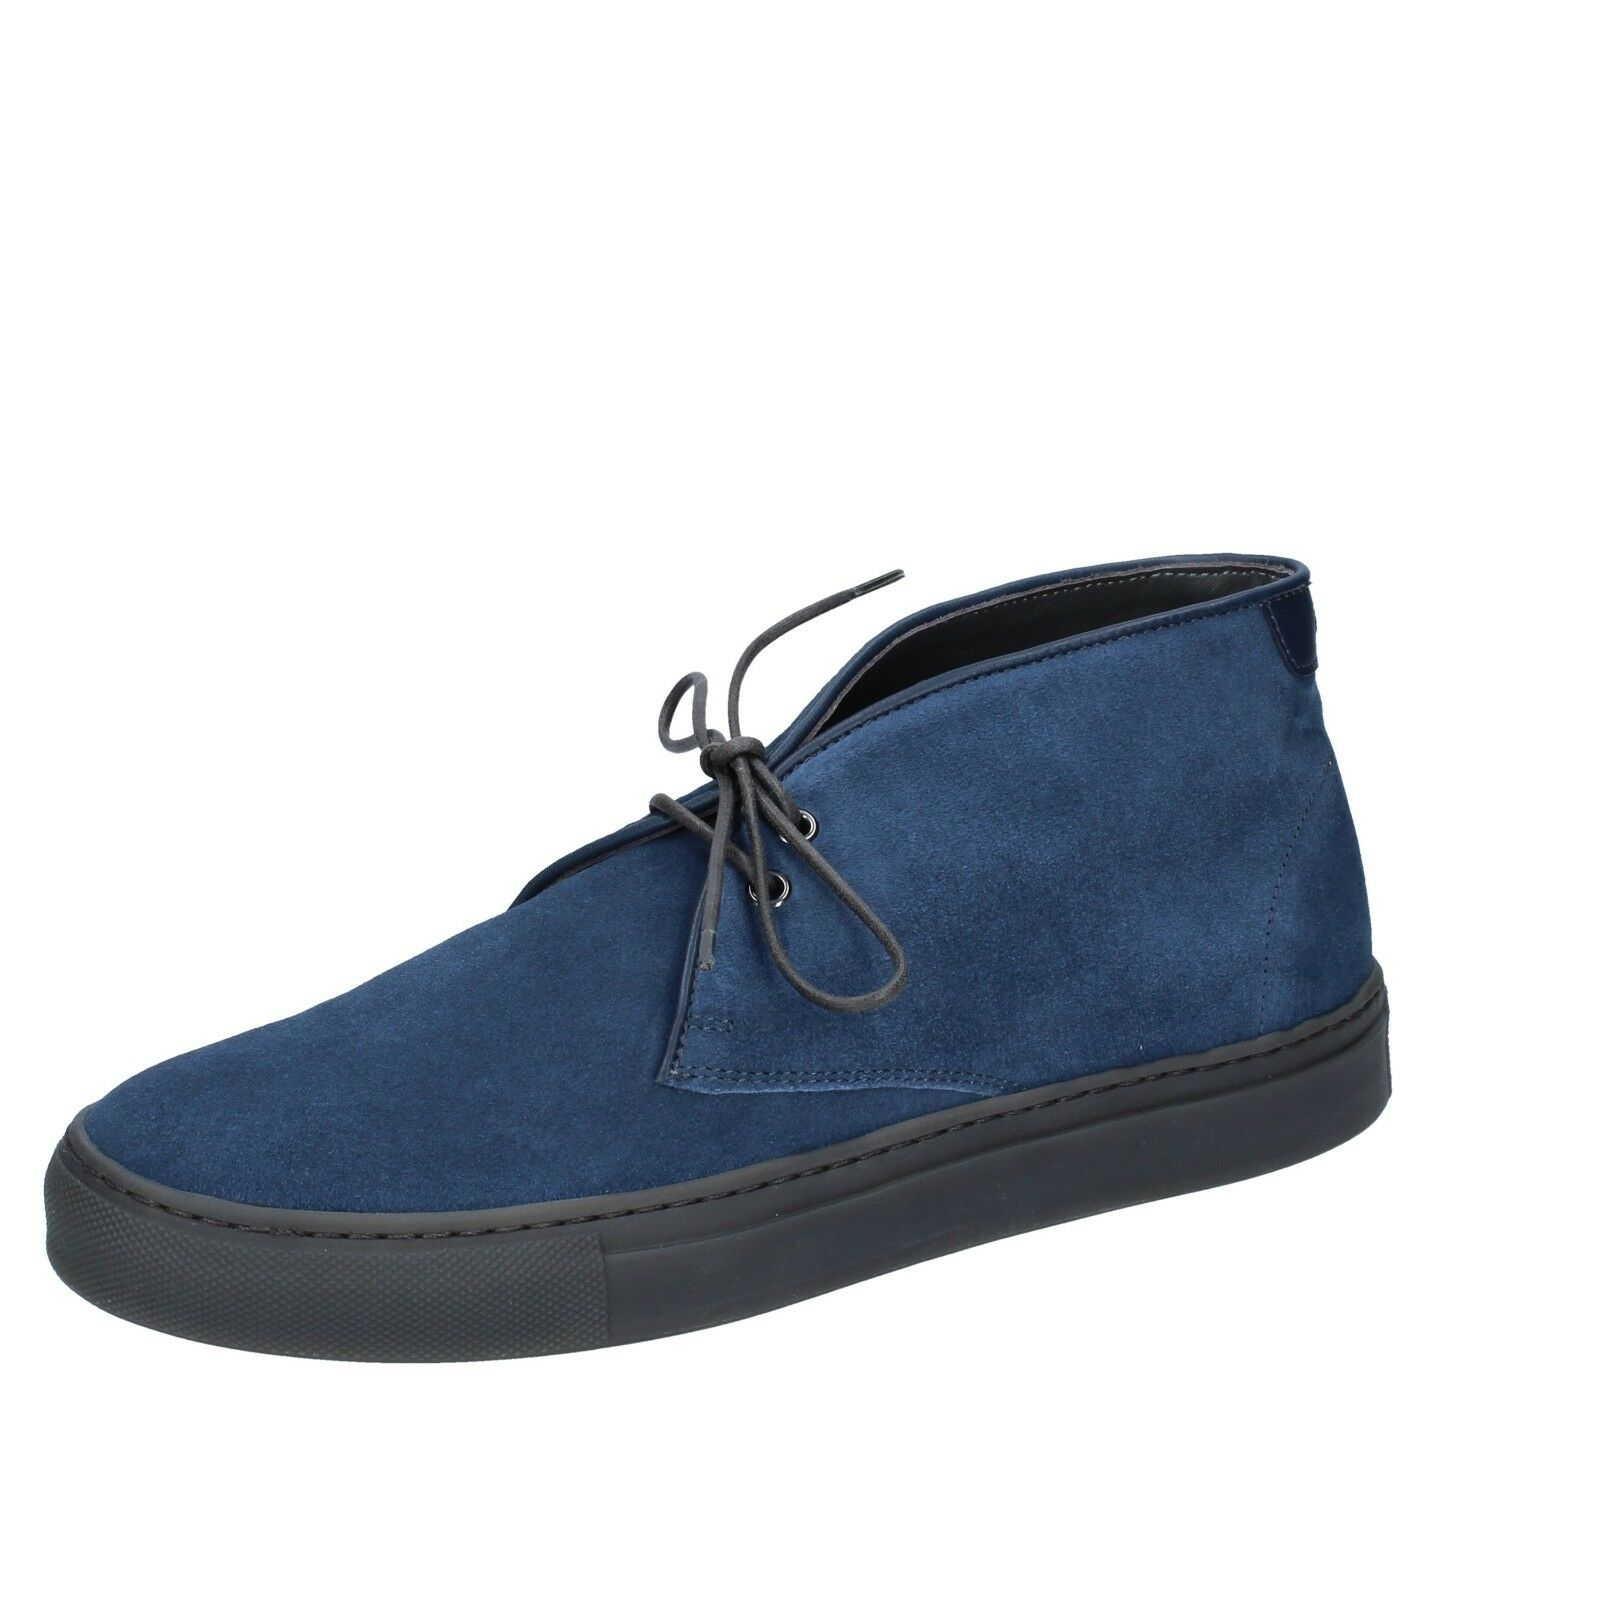 Mens shoes GUARDIANI 8 (EU 42) desert boots bluee suede ZX617-42